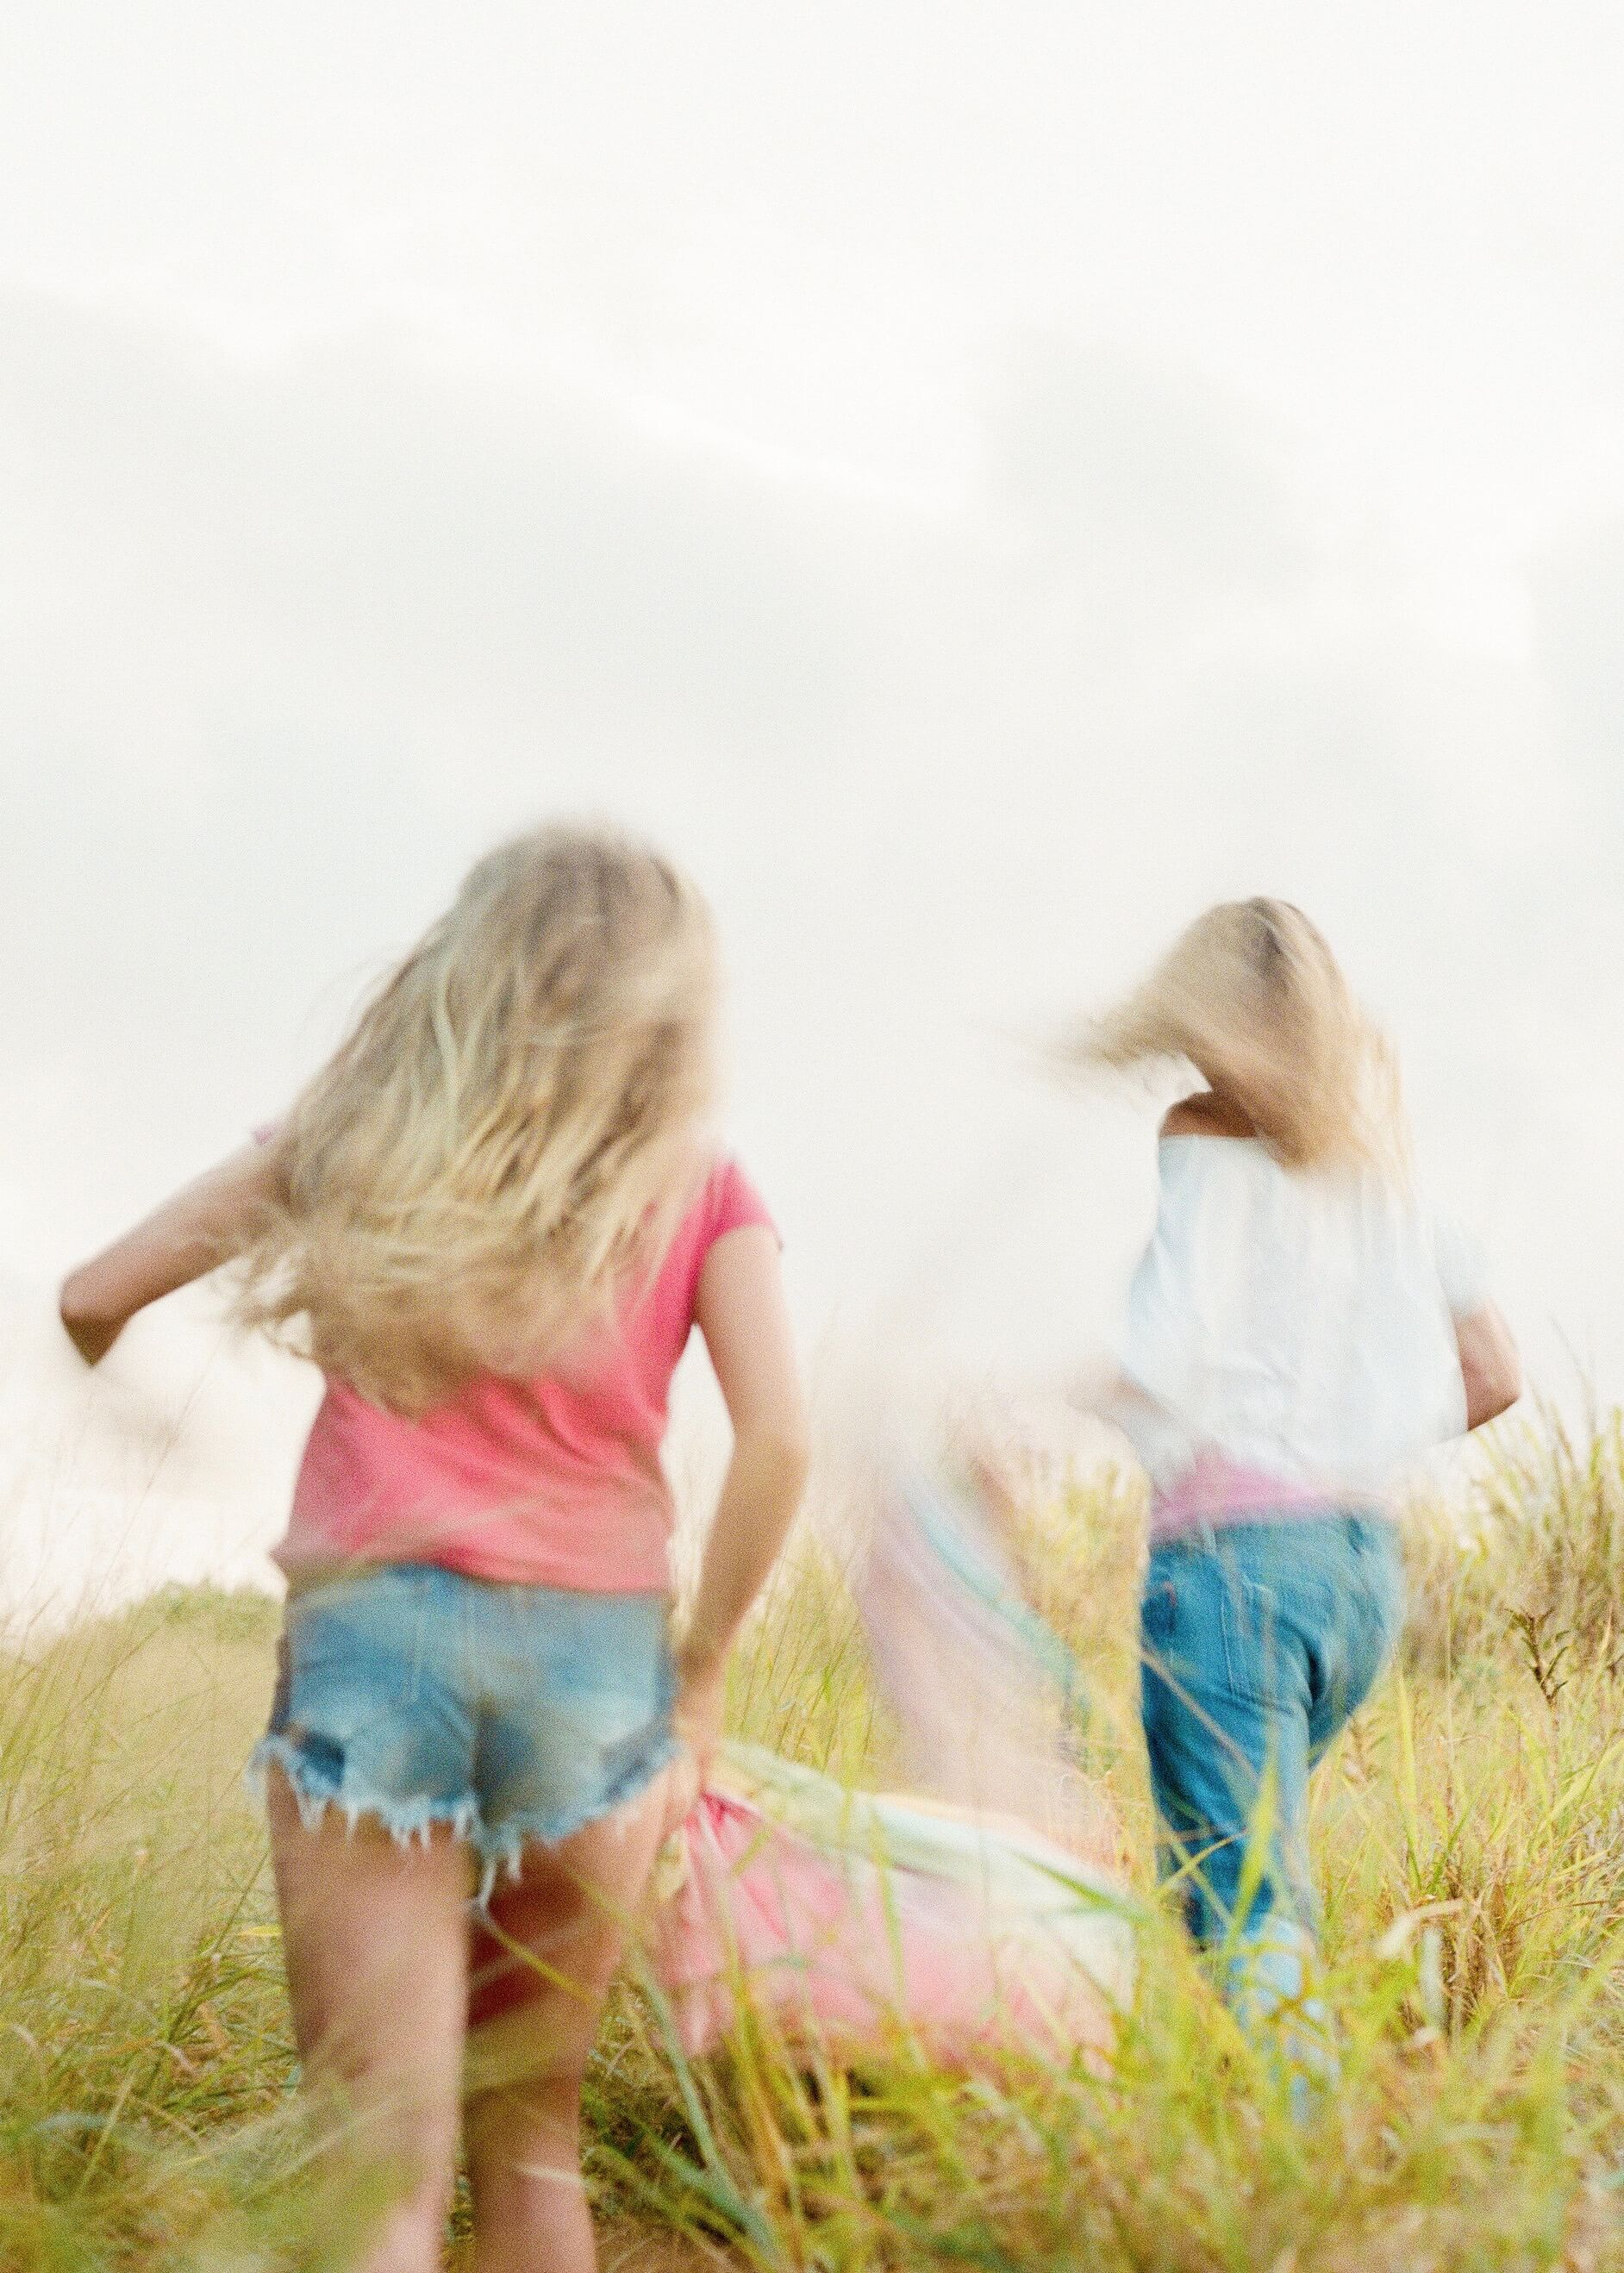 Blurred photo of little girls running in a field